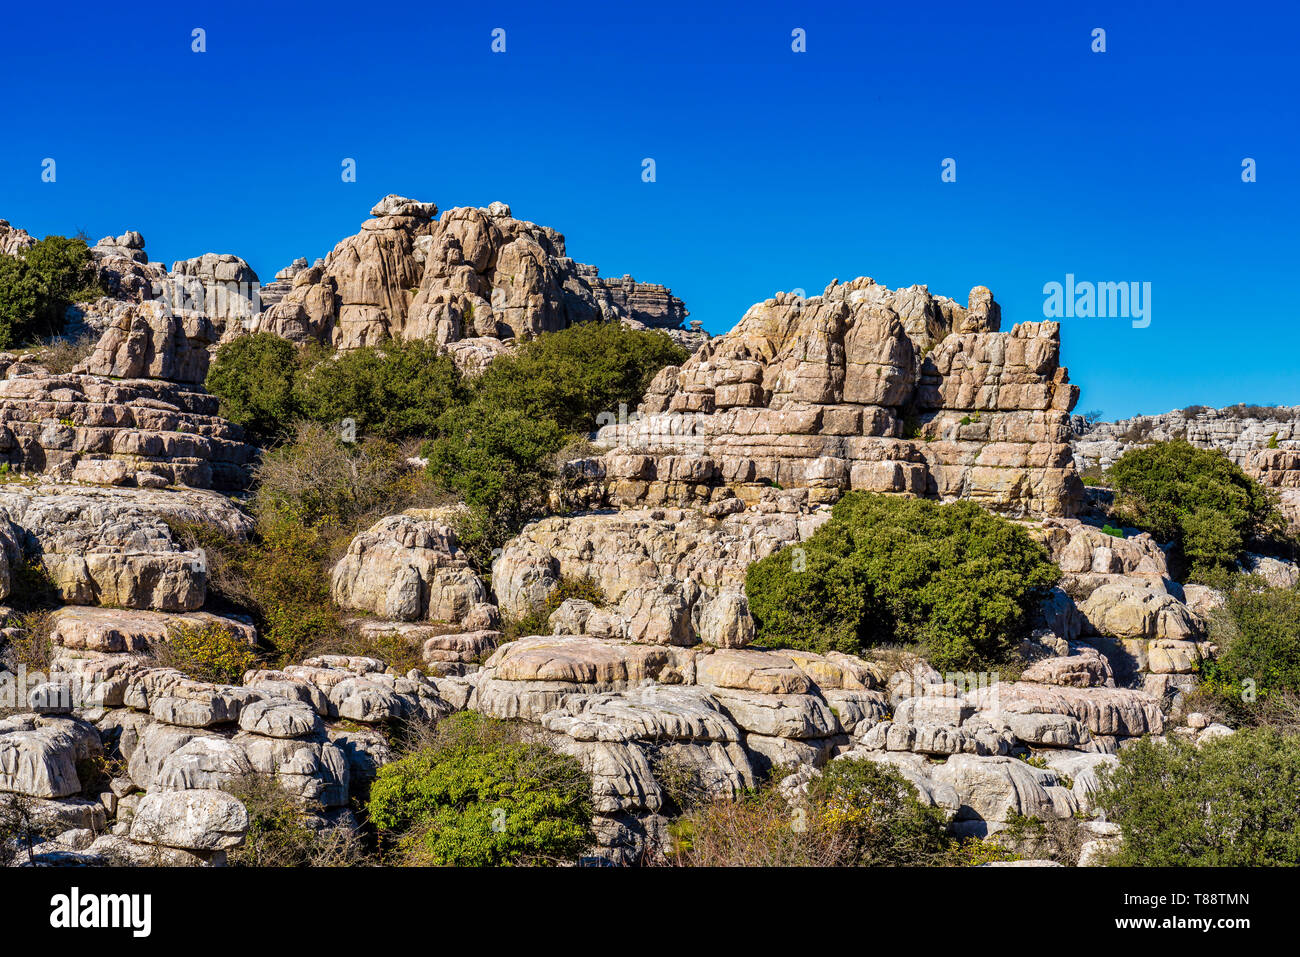 The rocks unique shape is due to erosion that occurred 150 million years ago during the Jurassic age, when the whole mountain was under sea water. Tor - Stock Image